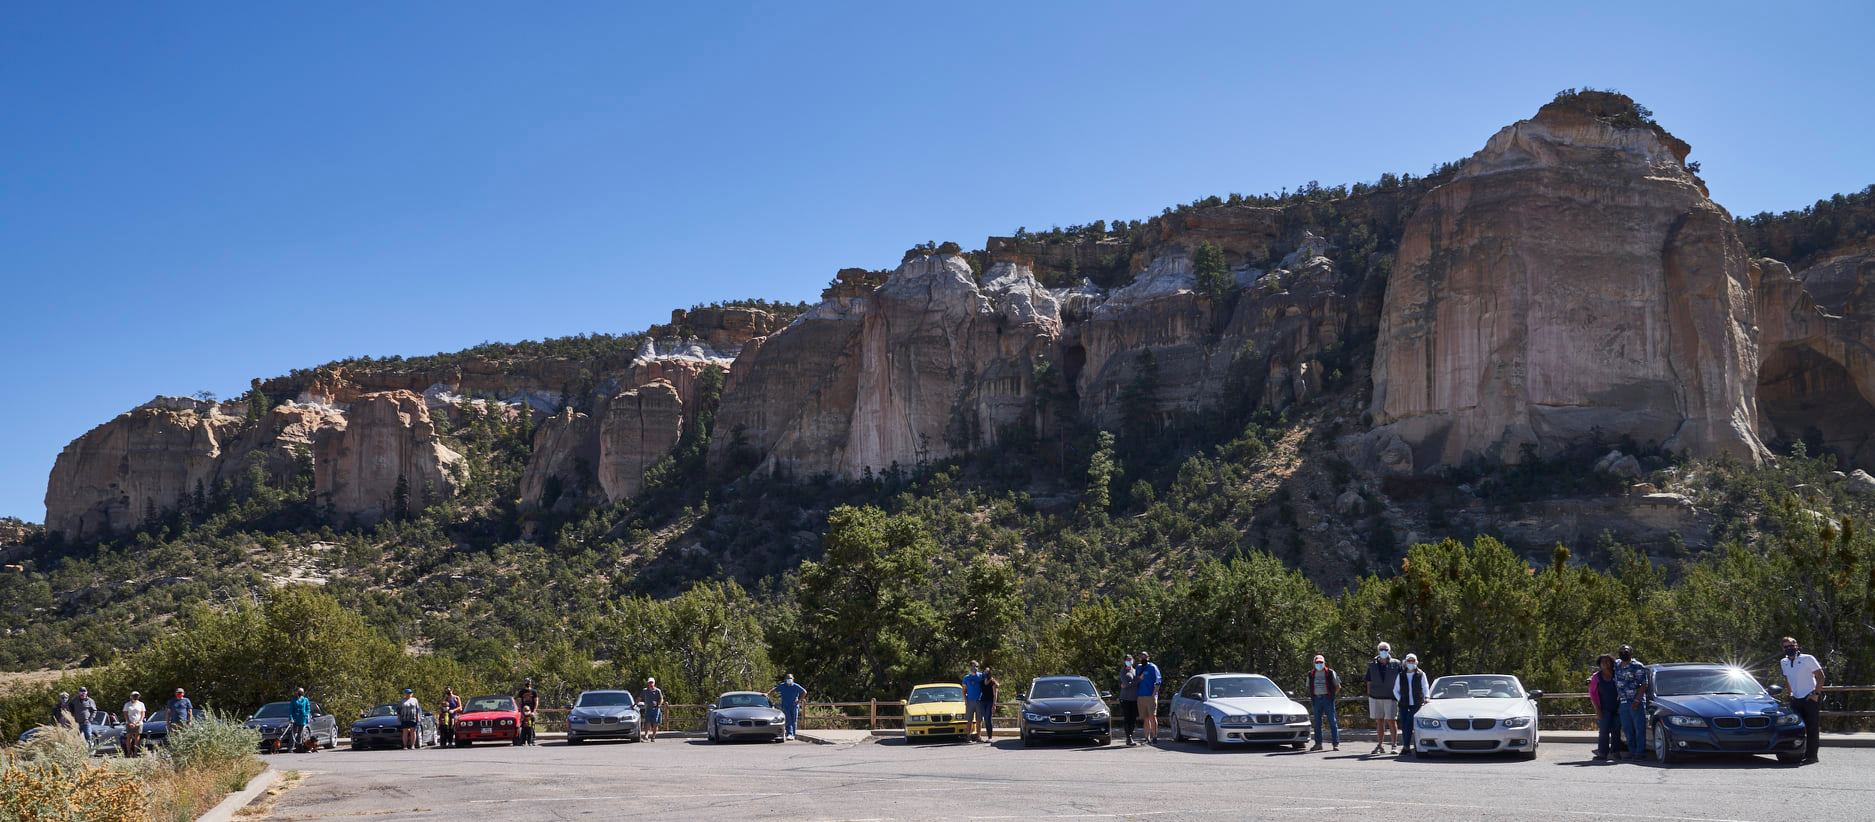 Photo from the NM BMW CCA 2020 Fall Tour by Jason Collin